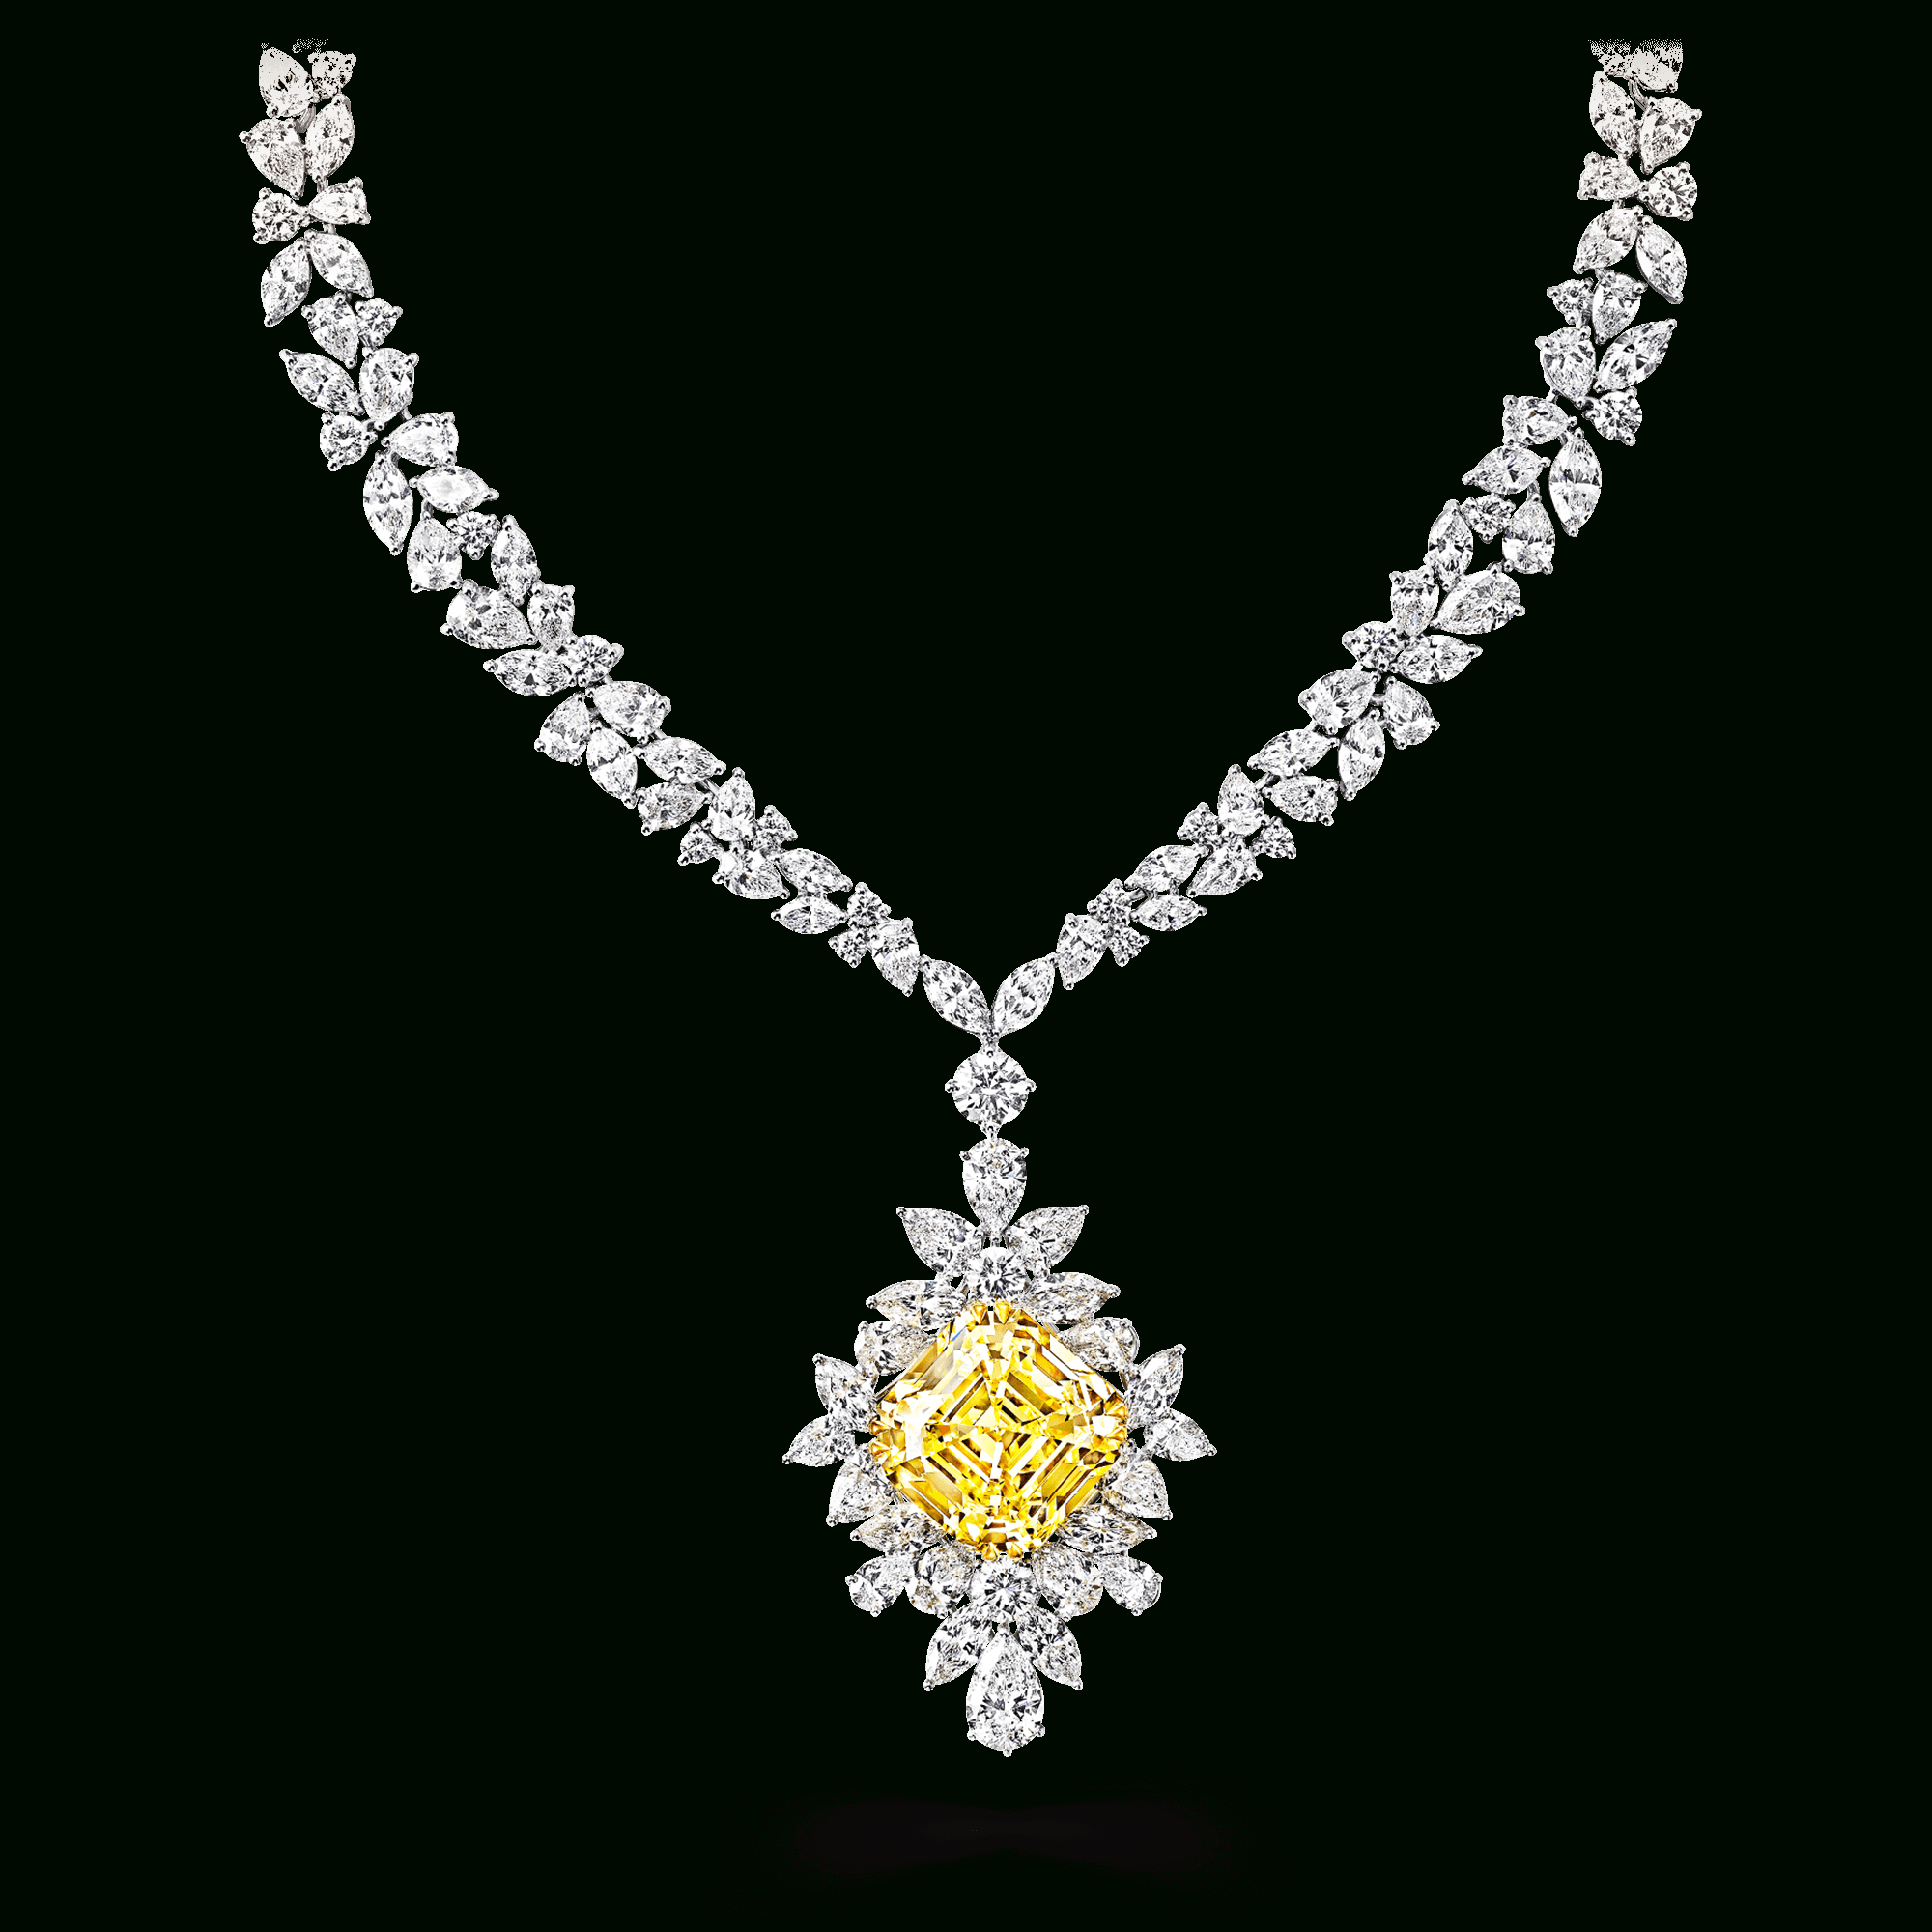 Yellow And White Diamond Necklace, Featuring A 53.94 Ct Fancy Intended For 2020 Family Script Locket Element Necklaces (Gallery 13 of 25)